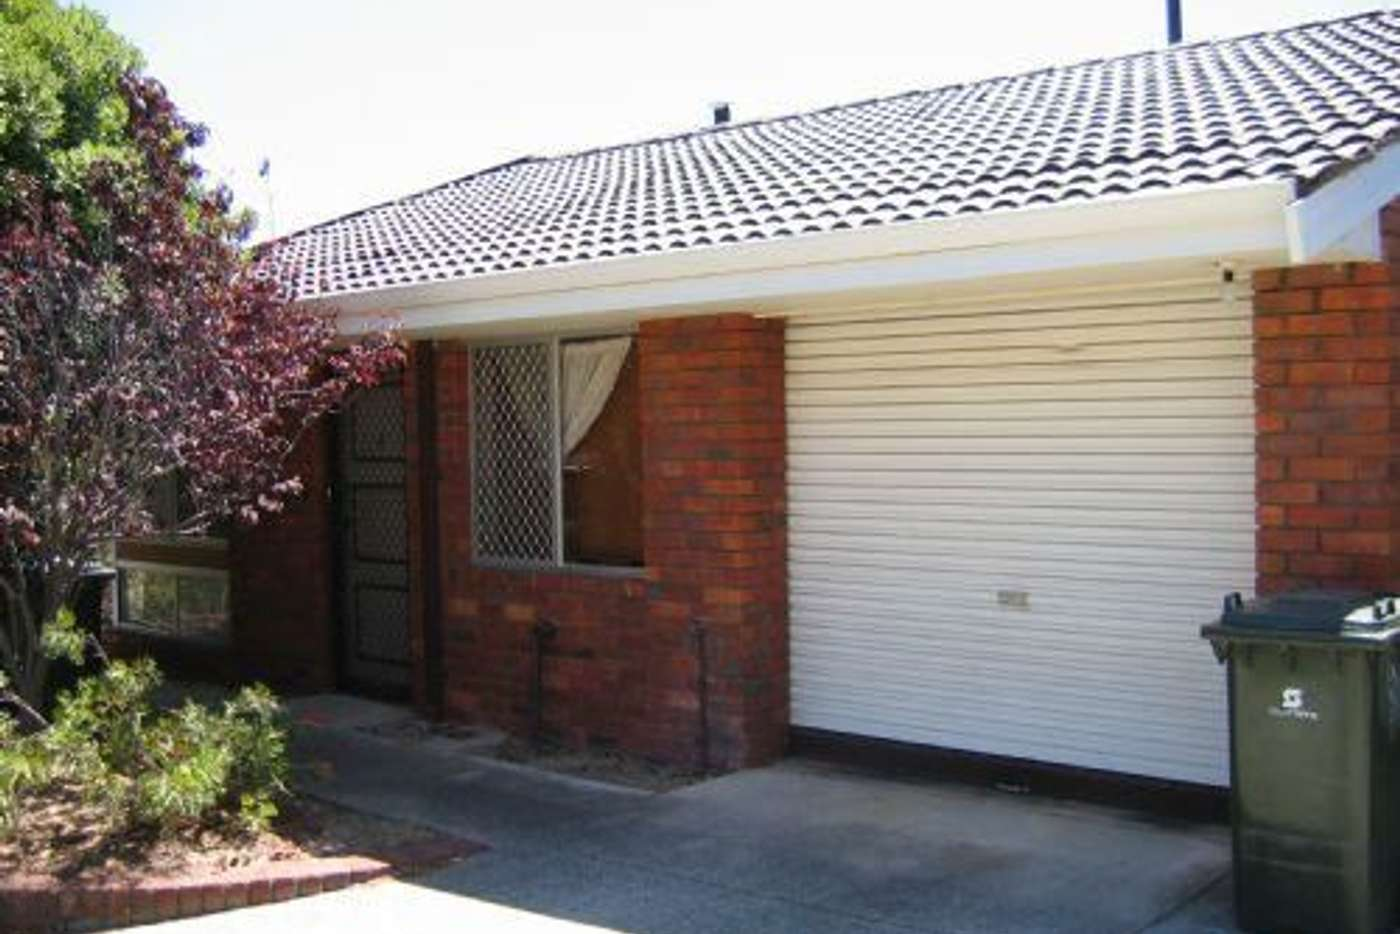 Main view of Homely villa listing, 9/6 Puntie Crescent, Maylands WA 6051